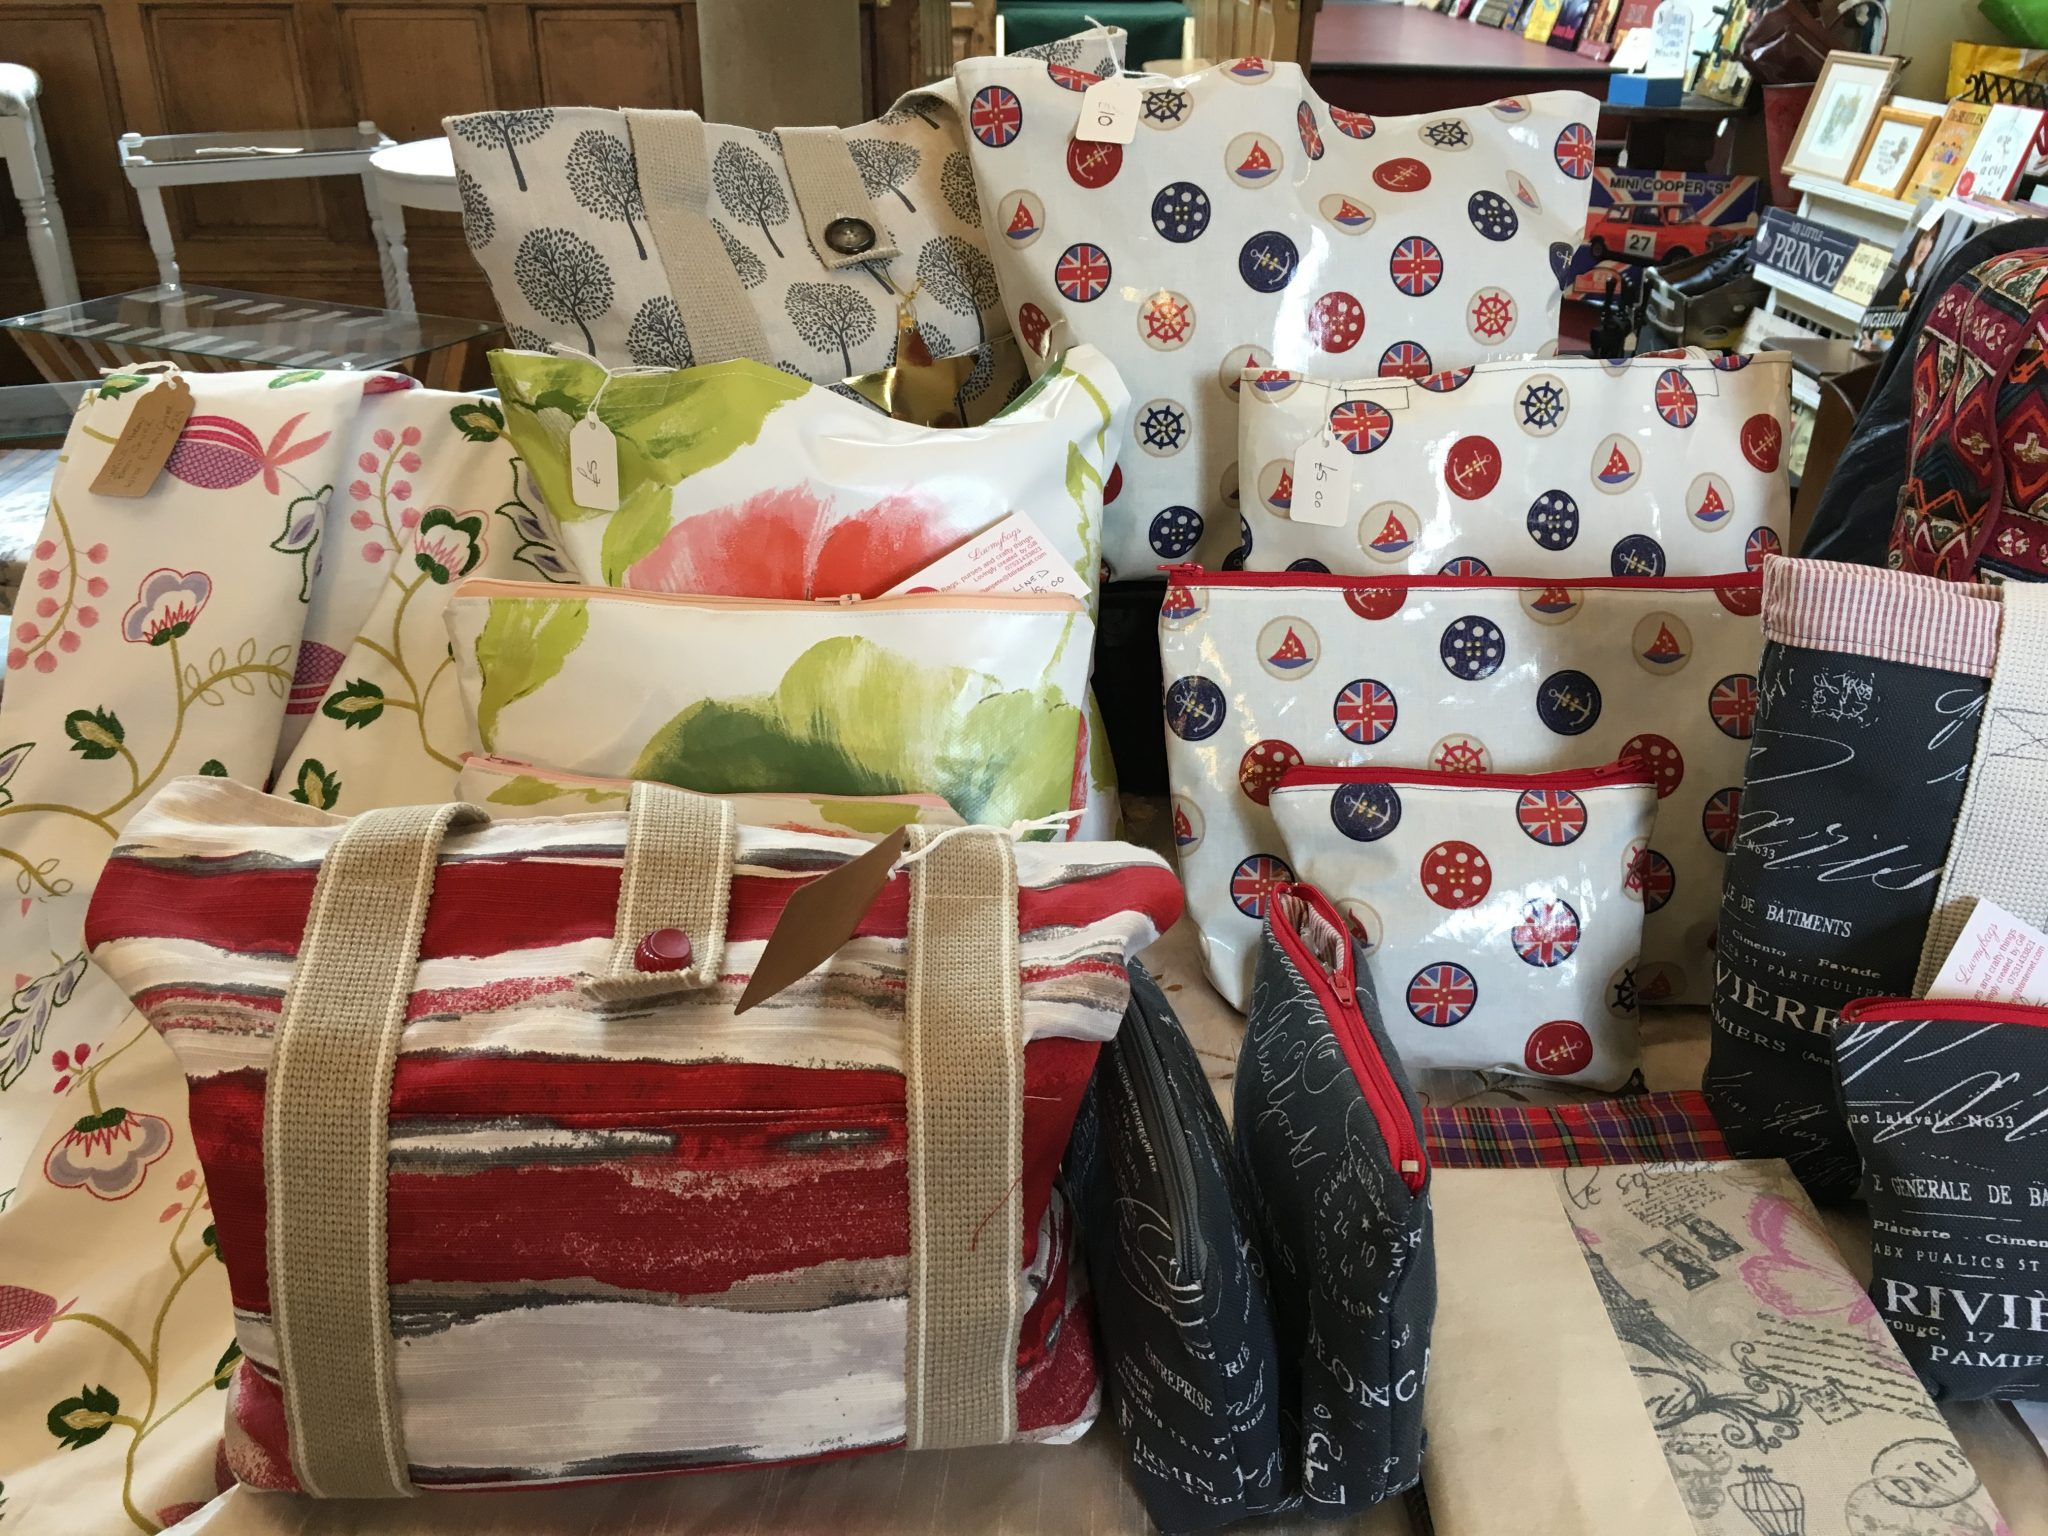 A selection of toilet bags, cosmetic bags and purses in vibrant fabric